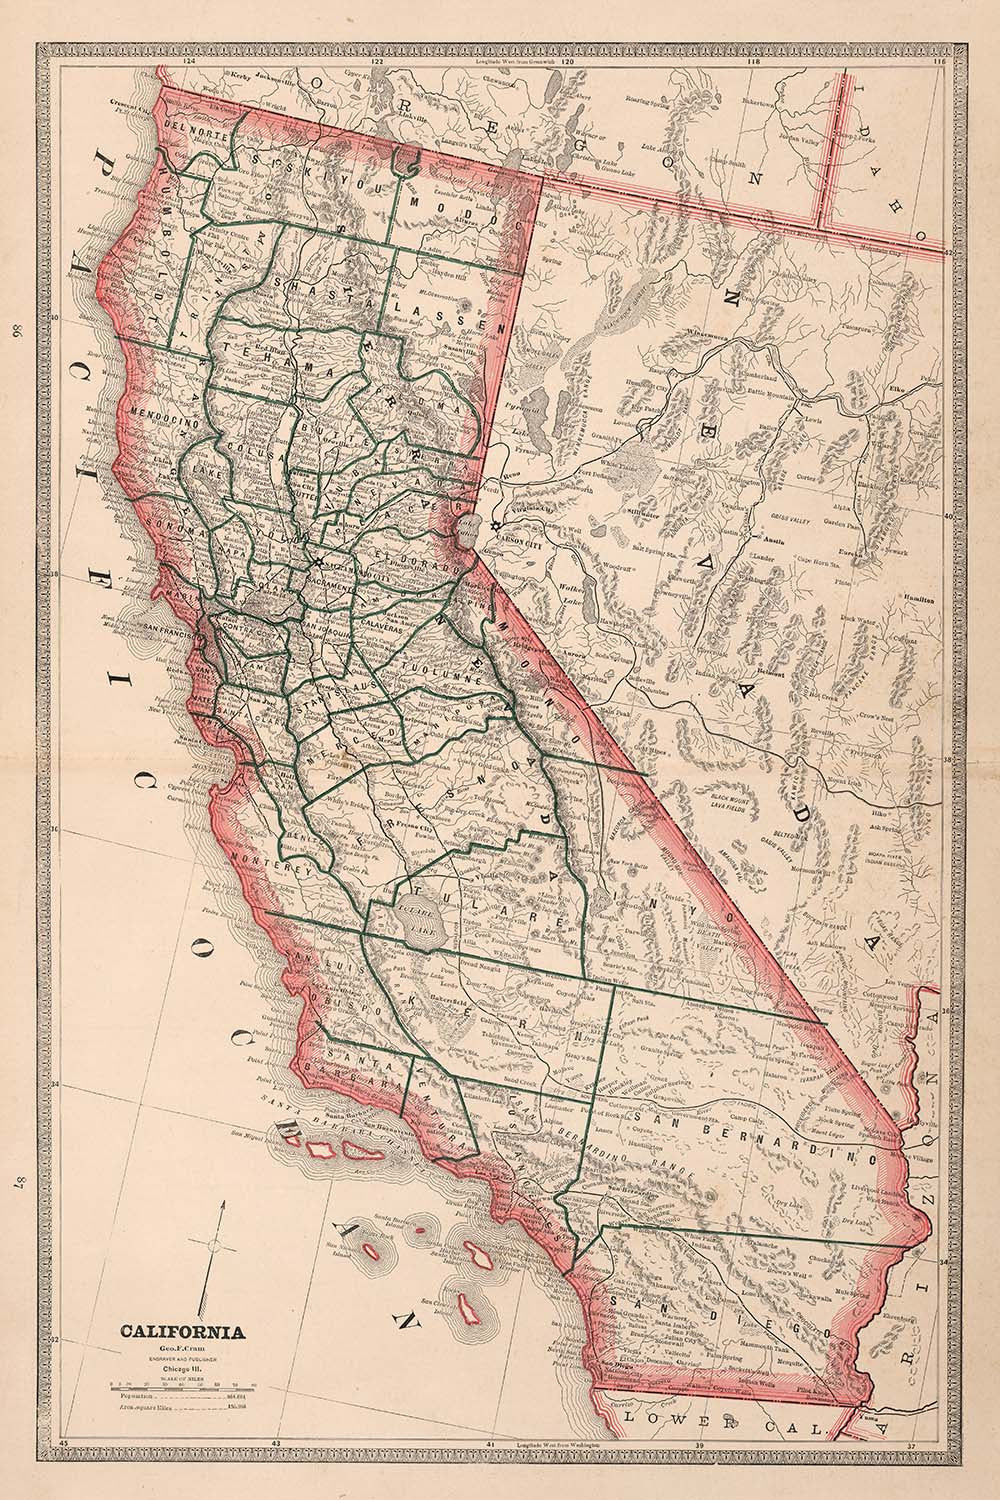 California State Map 1883 - Muir Way